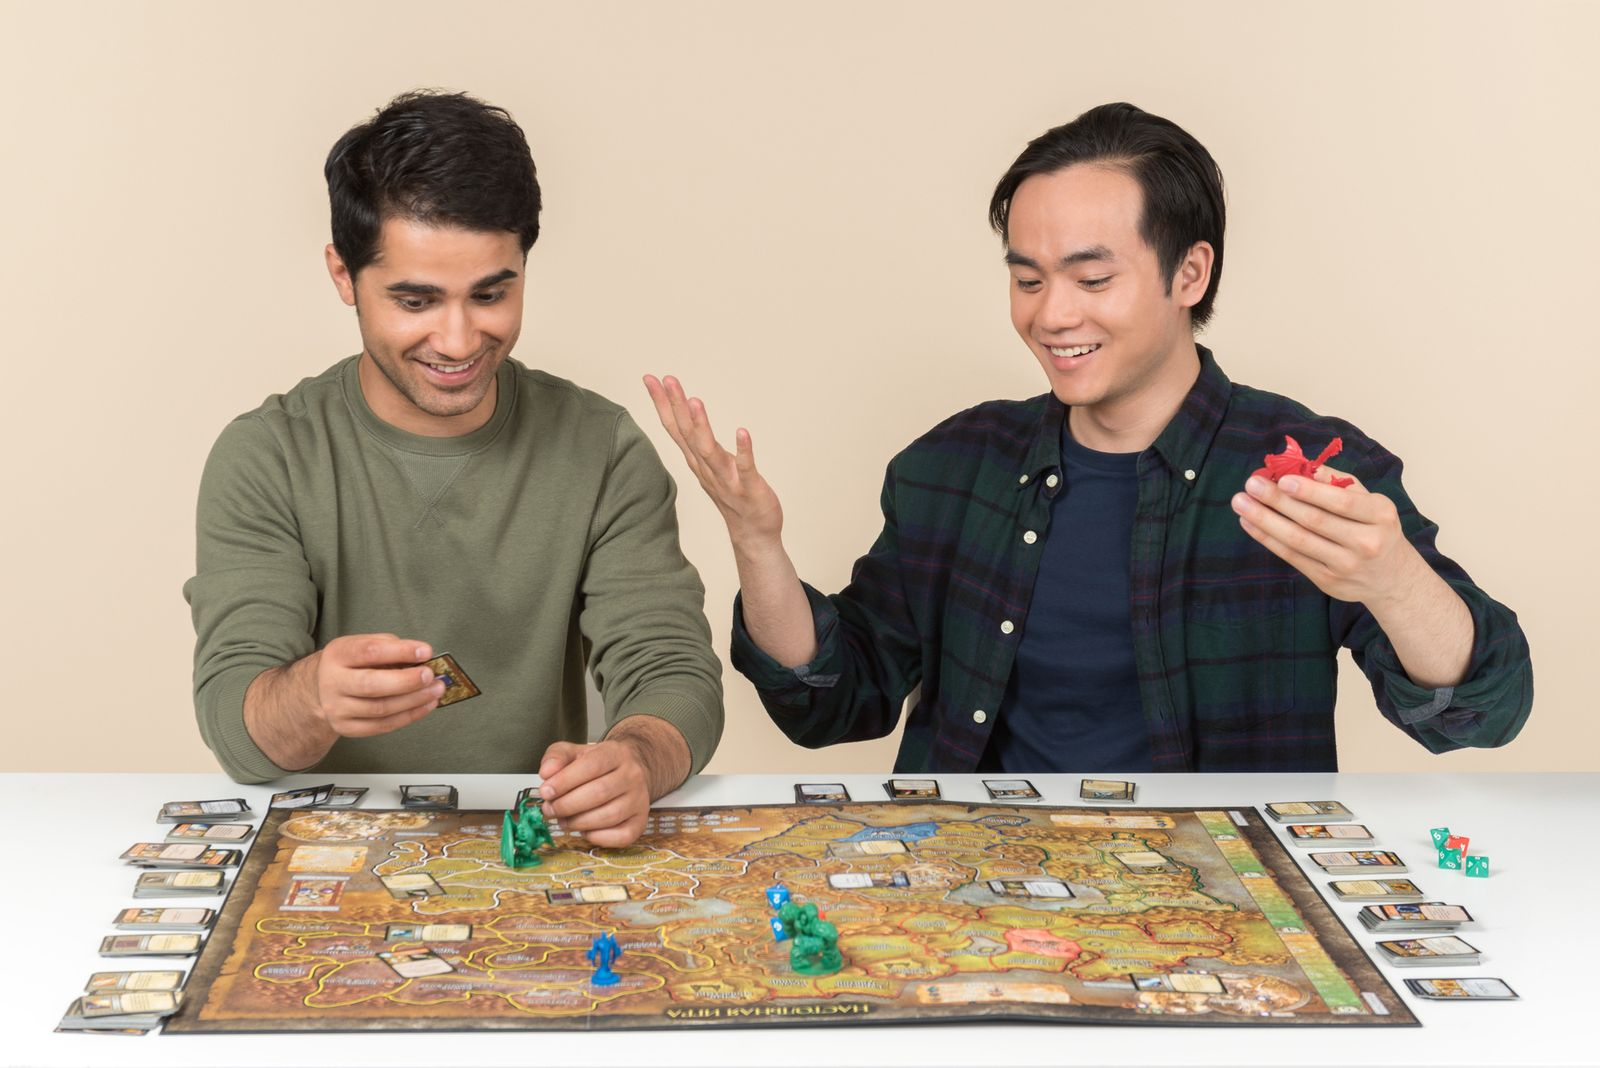 Friends Only: a special collection of Friendship Day images: Playing board game with a friend